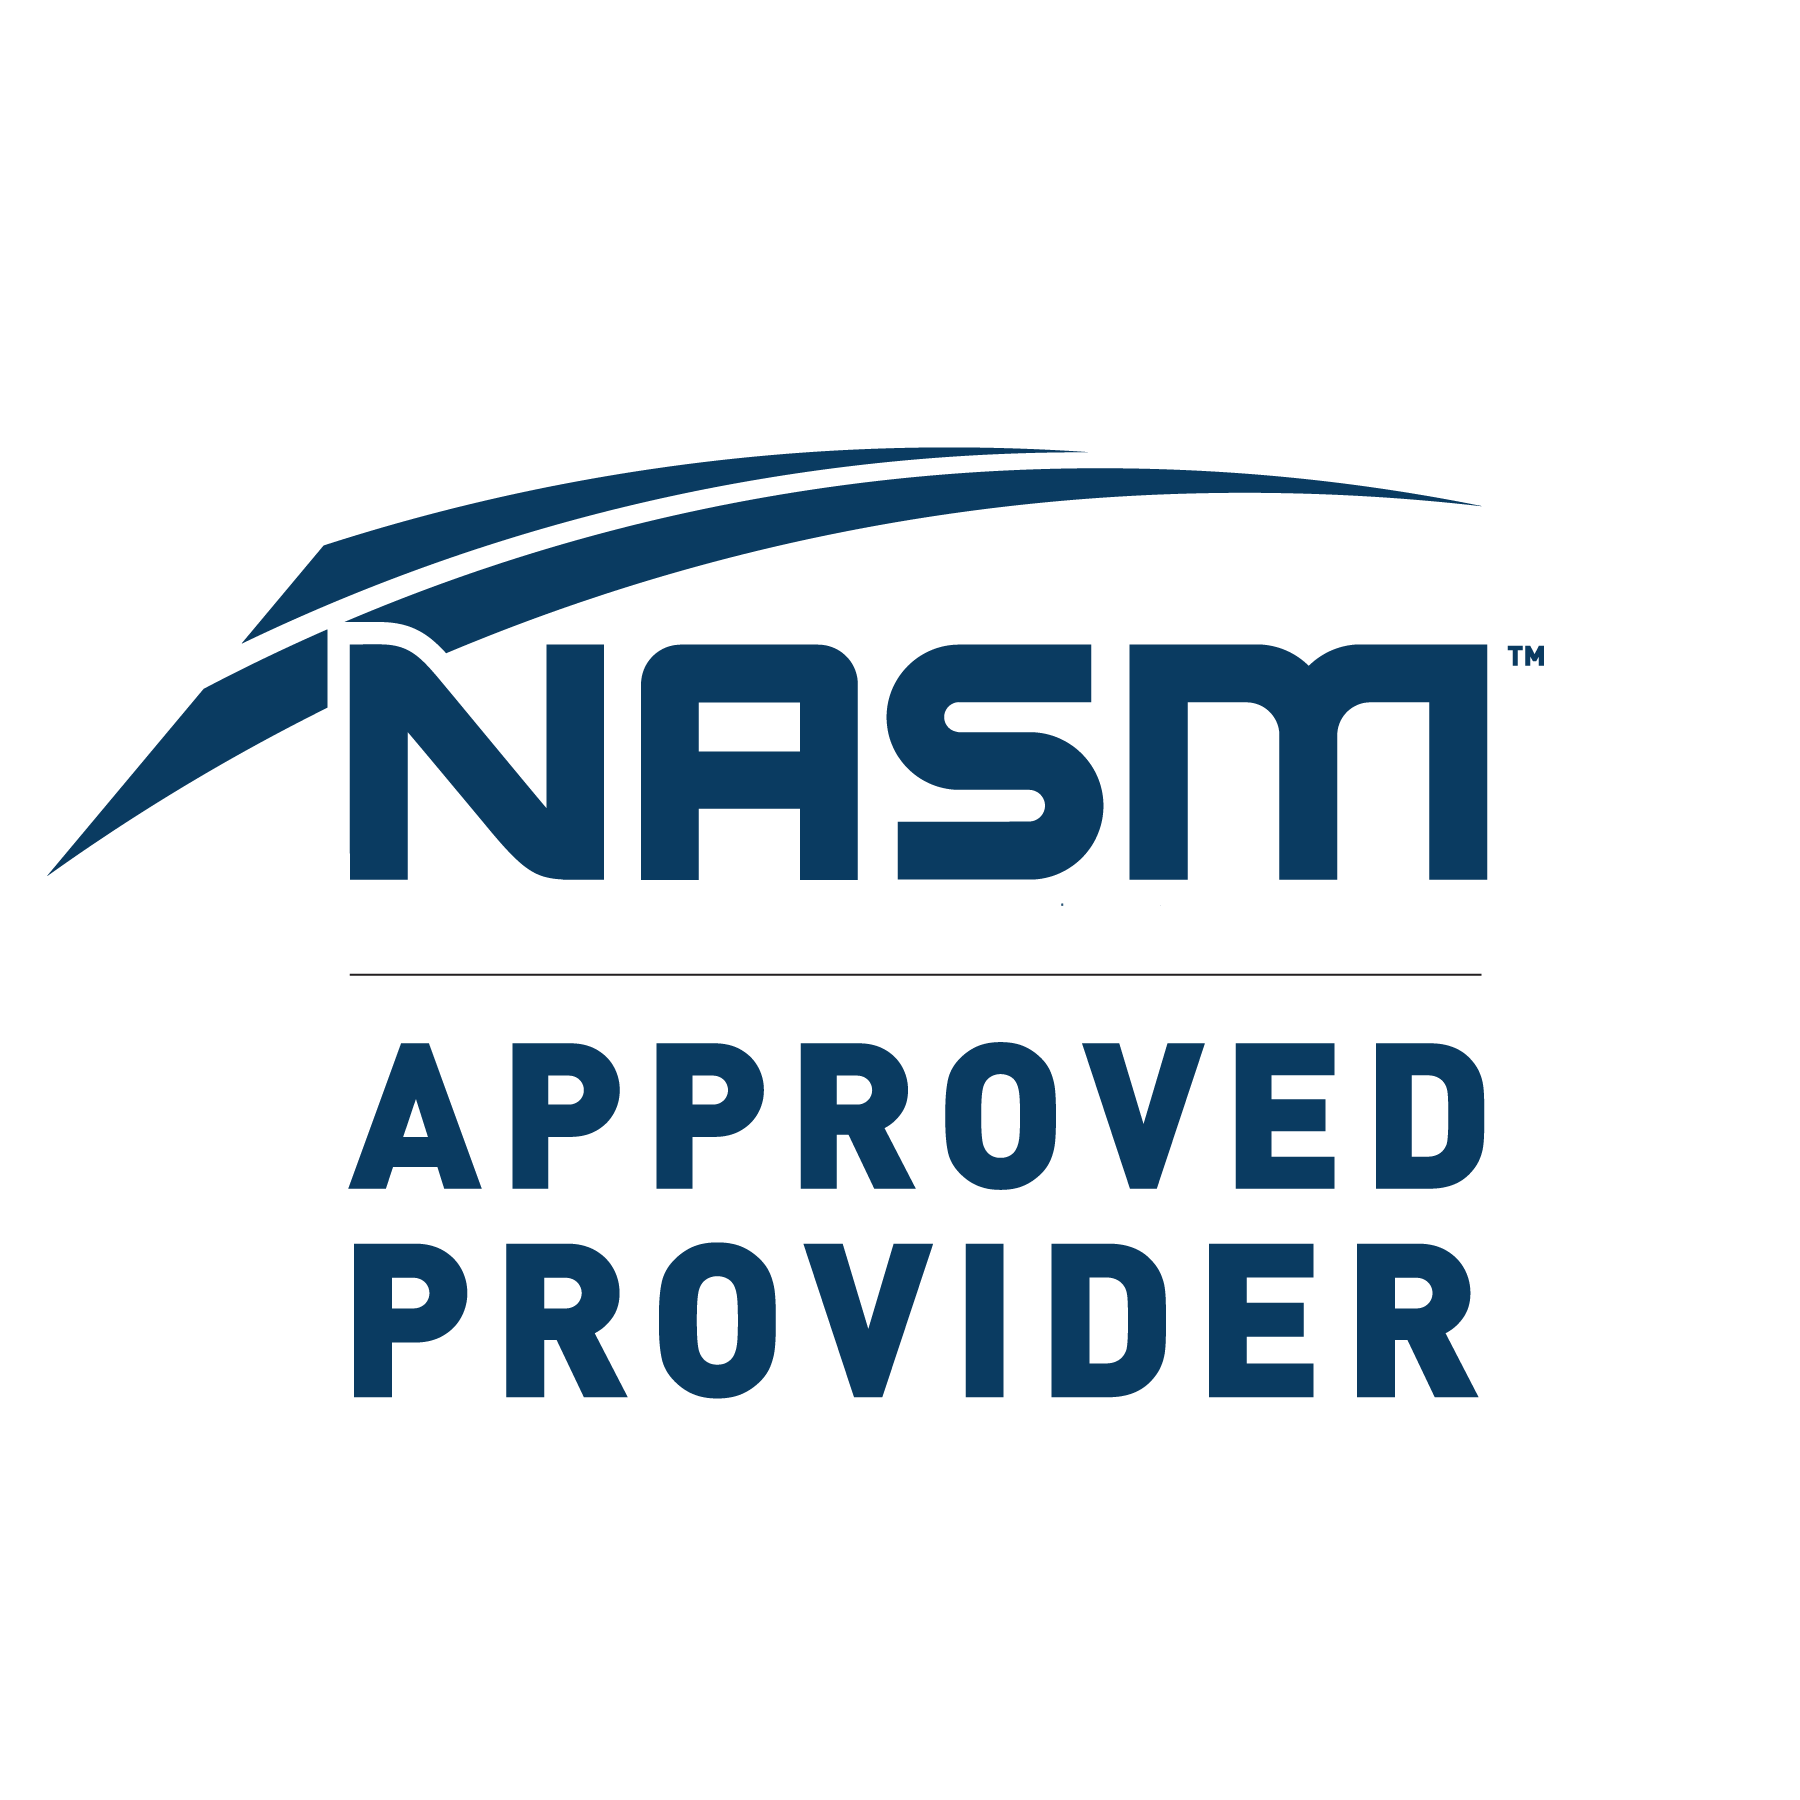 National Academy of Sports Medicine (NASM) approved provider